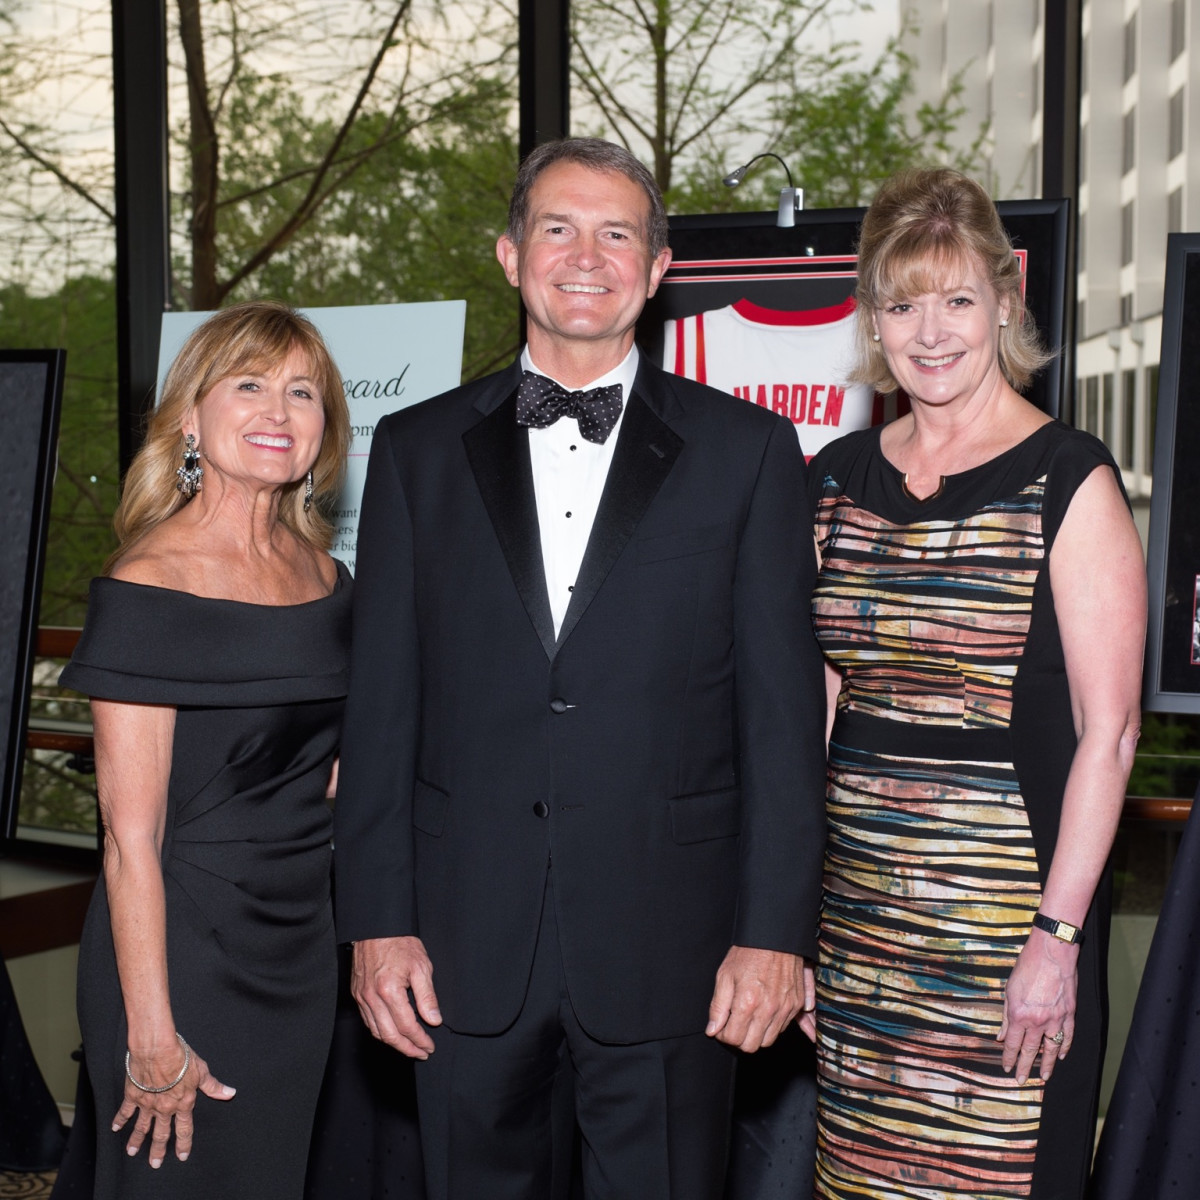 Marlene & Kurt Nondorf, Leslie Bourne at Covenant House Gala 2017